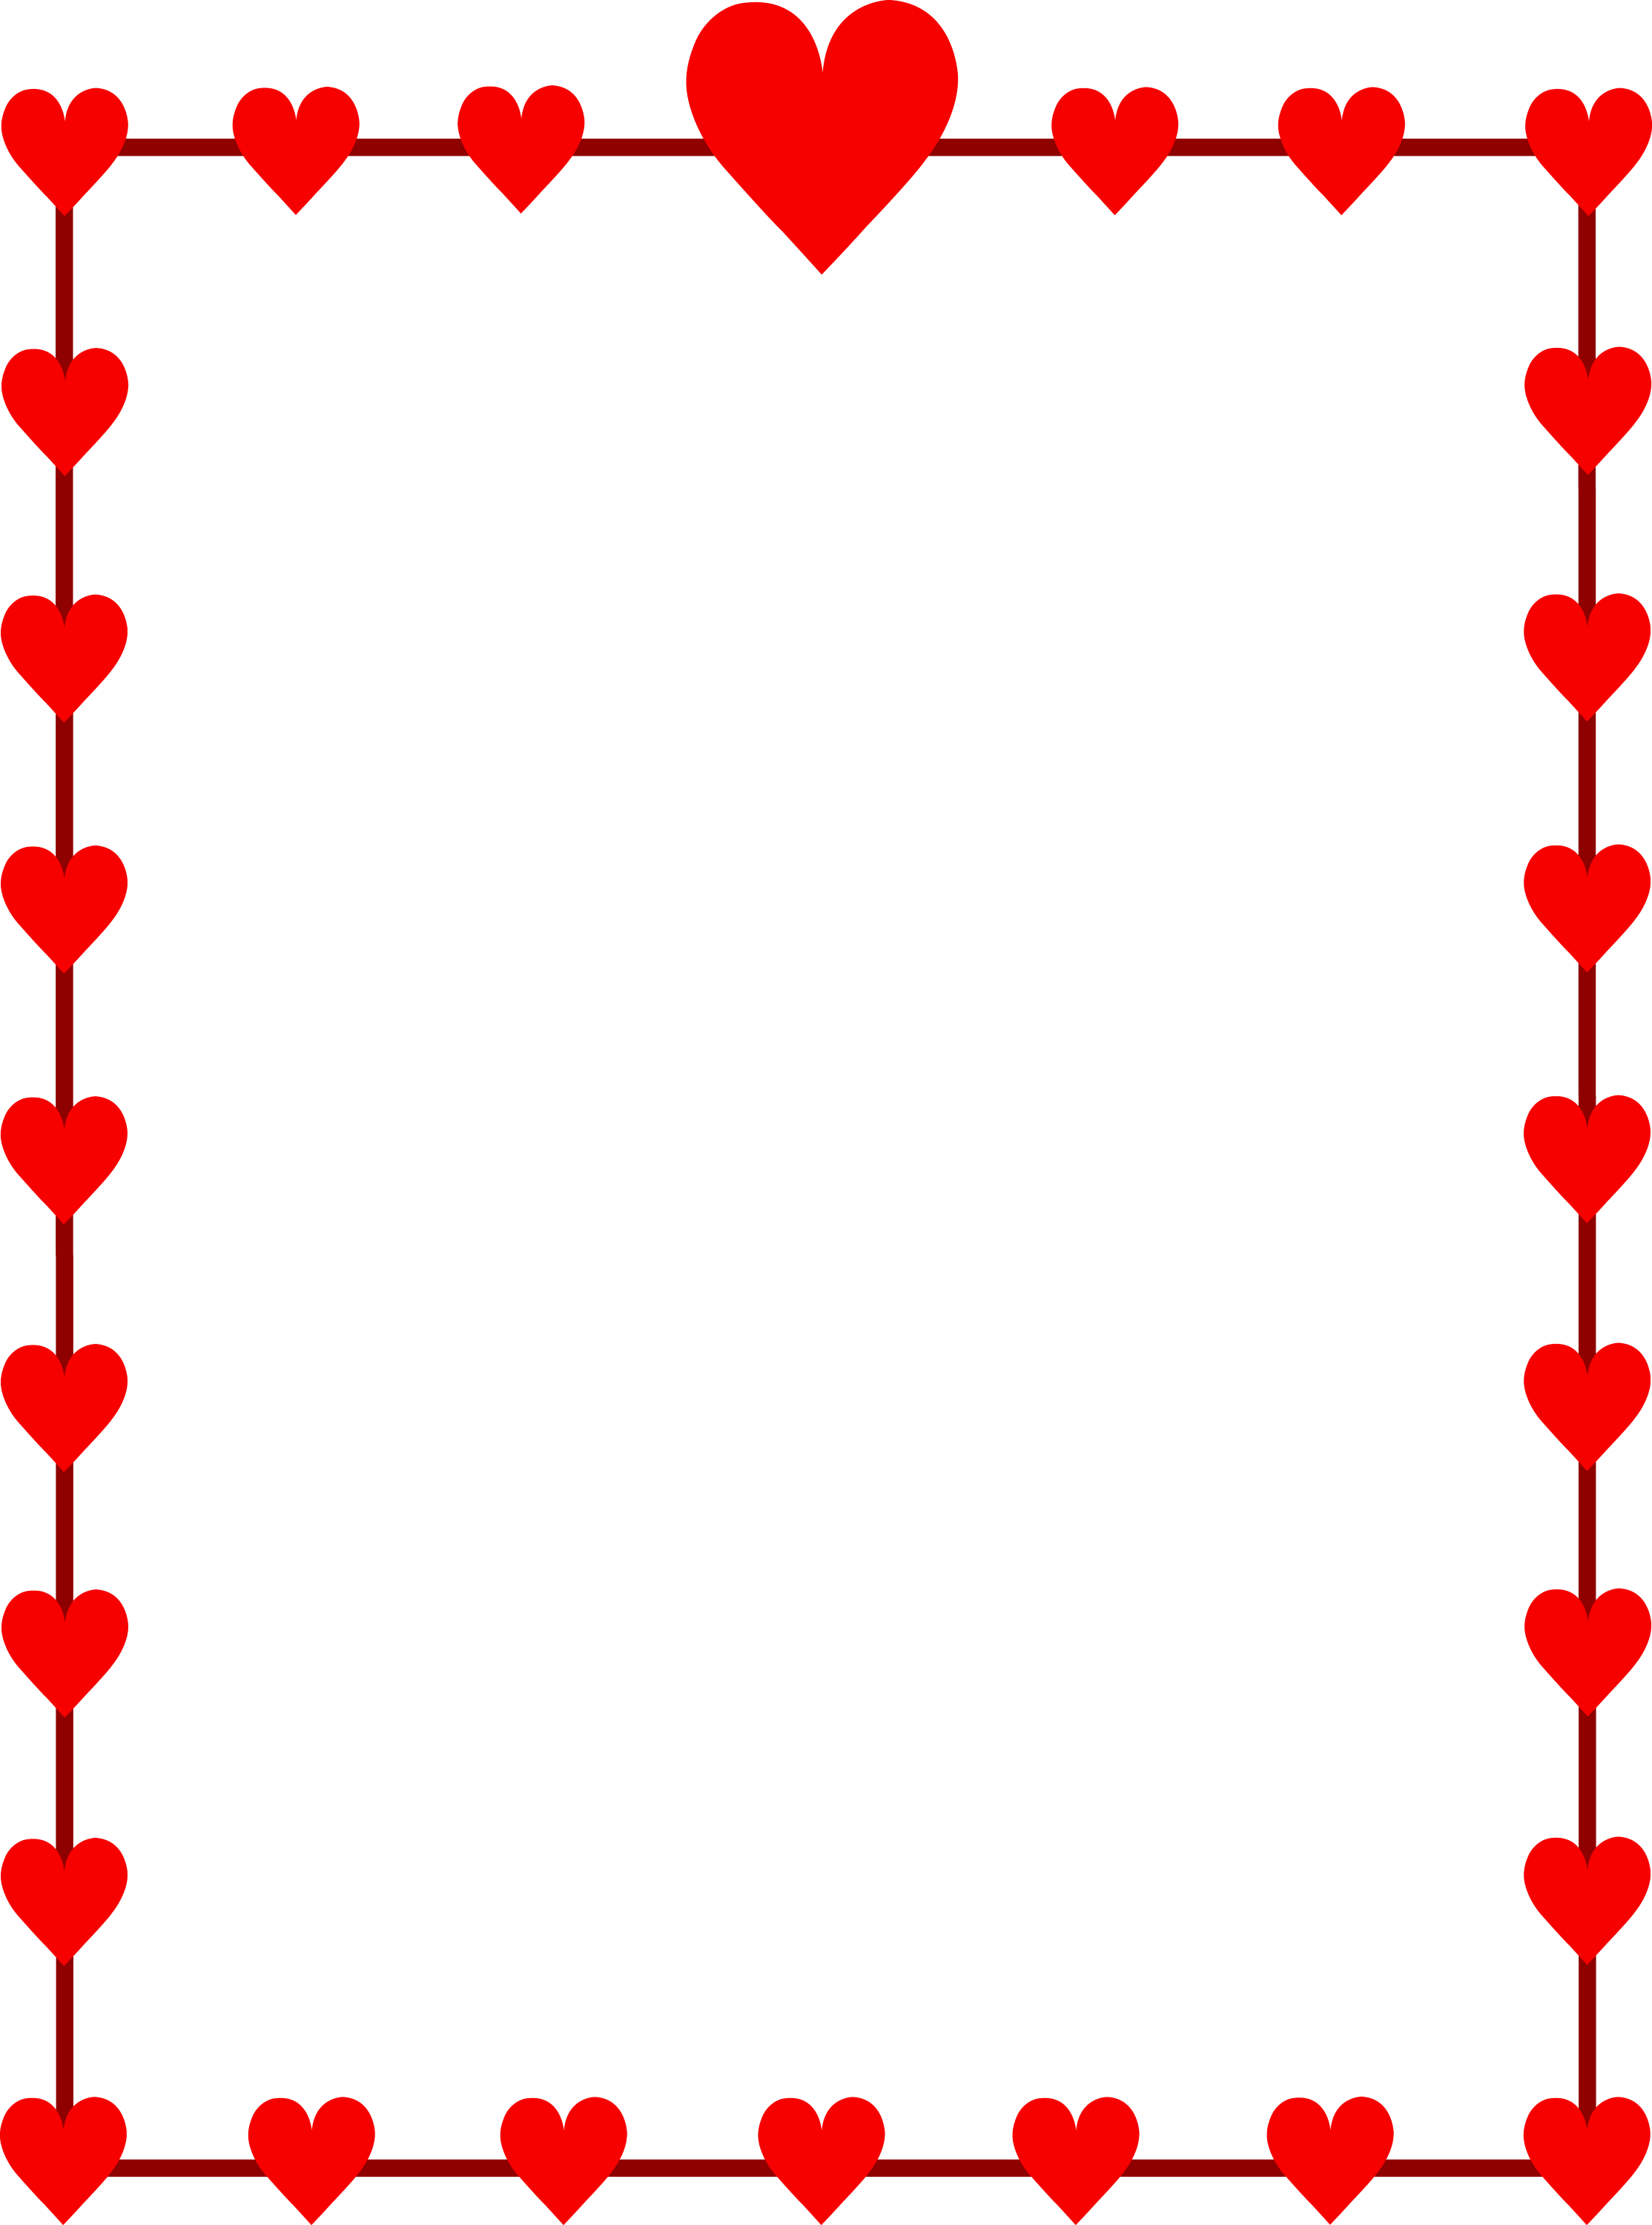 Cute Red Heart Border